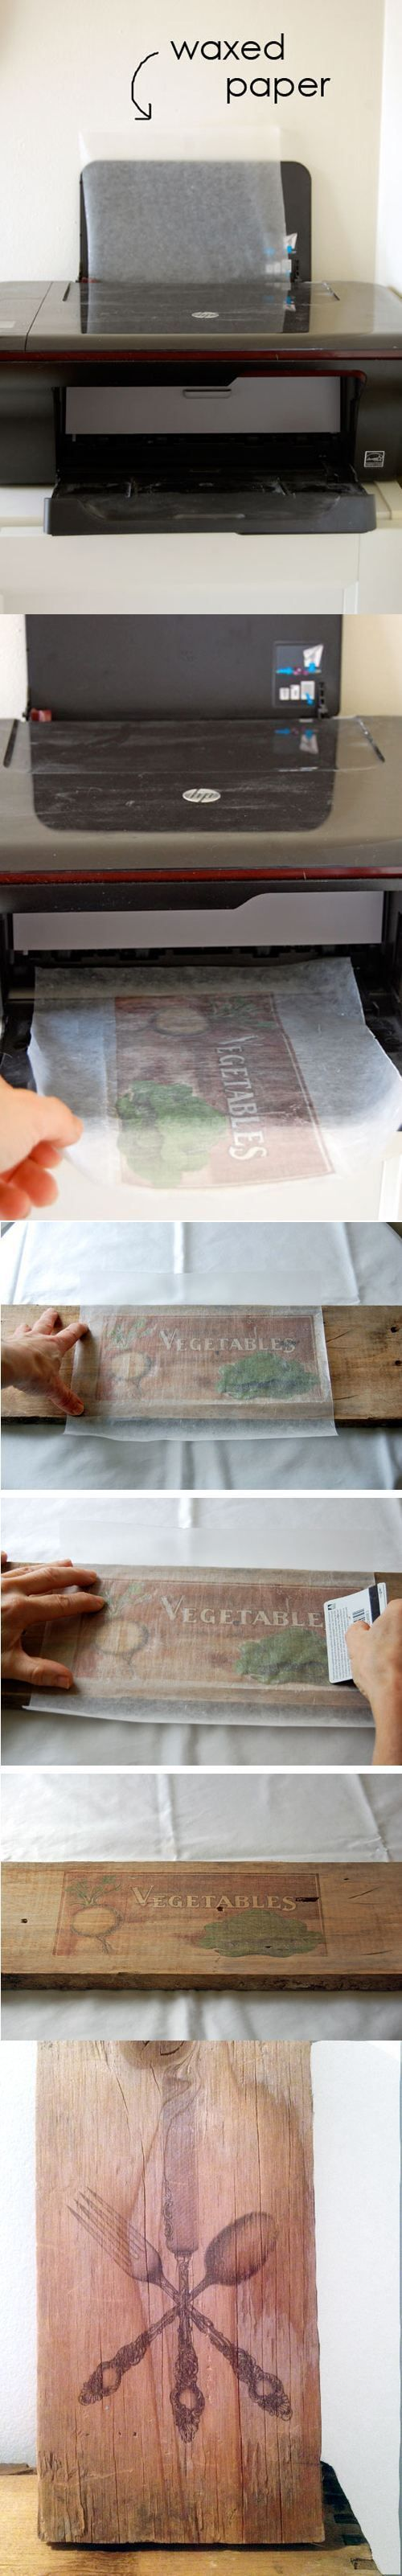 How to Print Pictures on Wood Waxed Paper Transfer, 20+ DIY Pallet Projects That Are Easy to Make and Sell - Decorextra